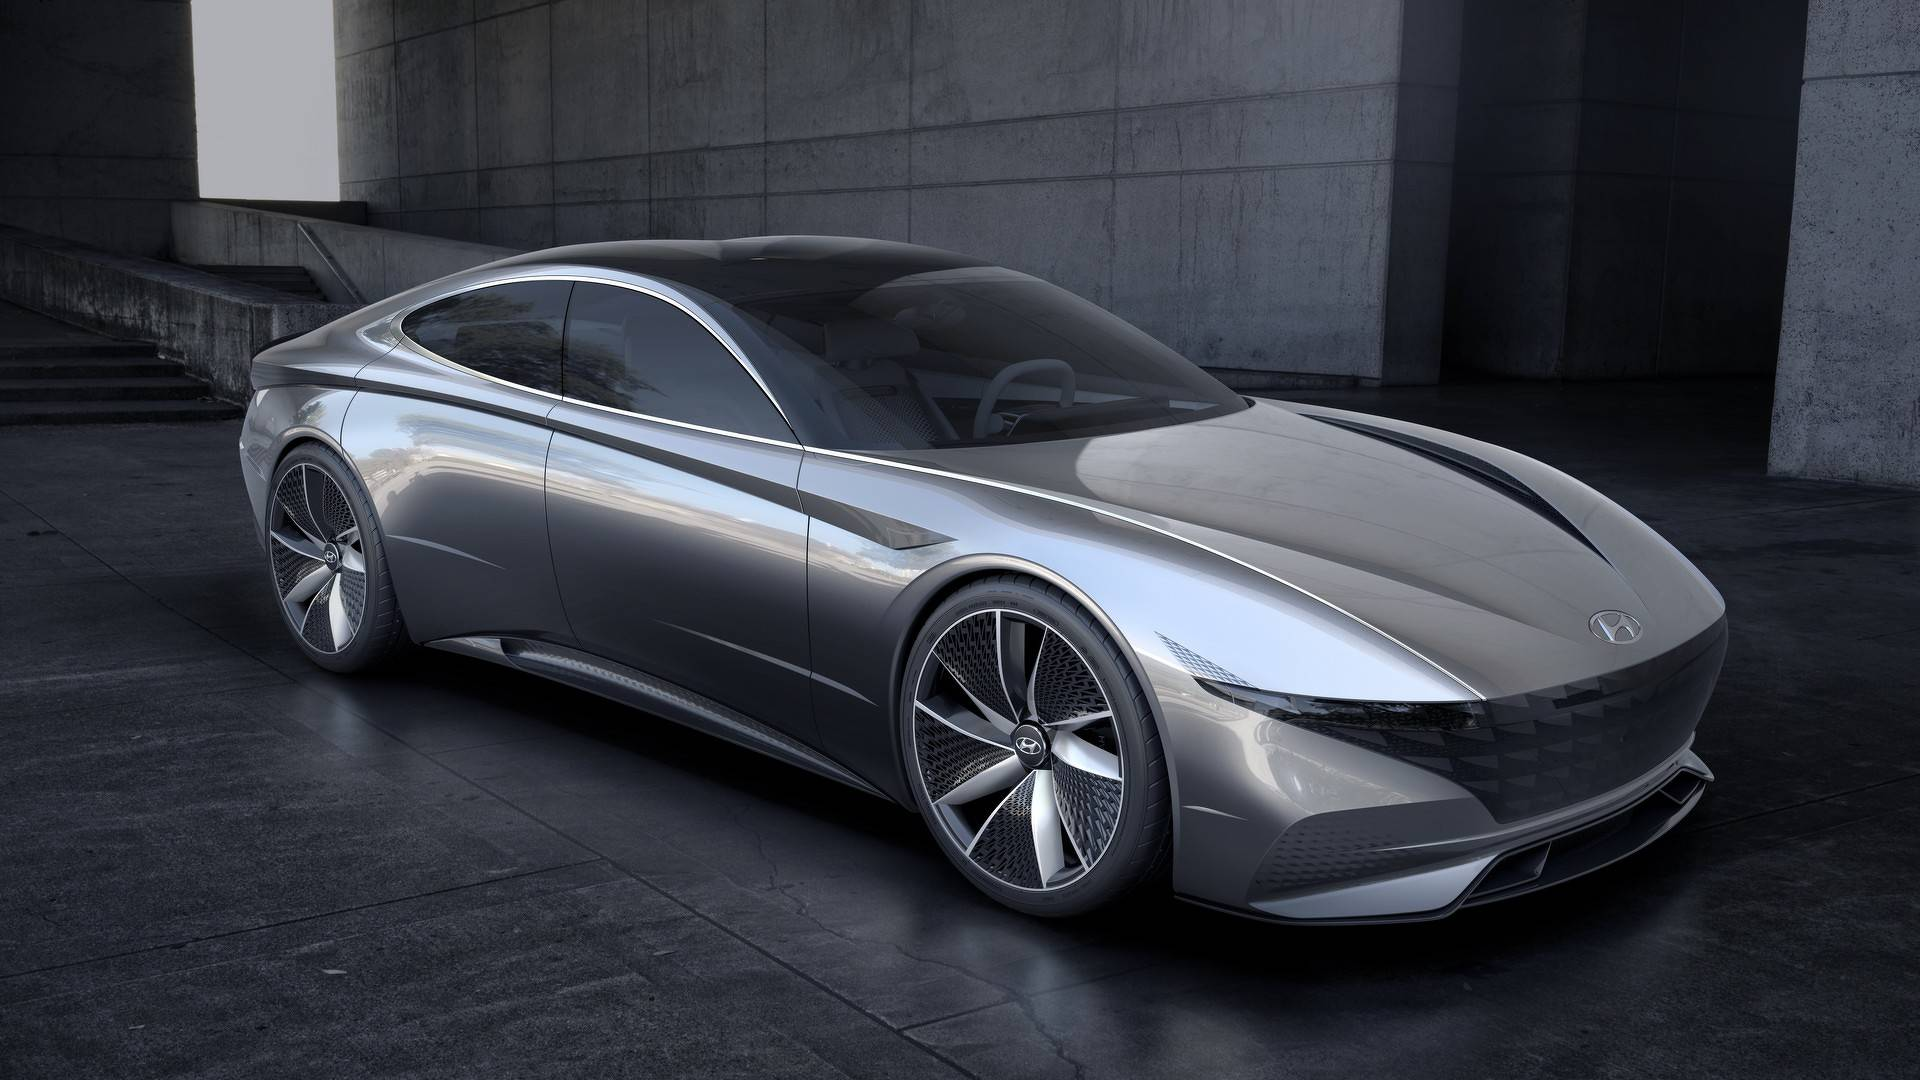 Hyundai Giving 2020 Sonata Four Door Coupe Styling